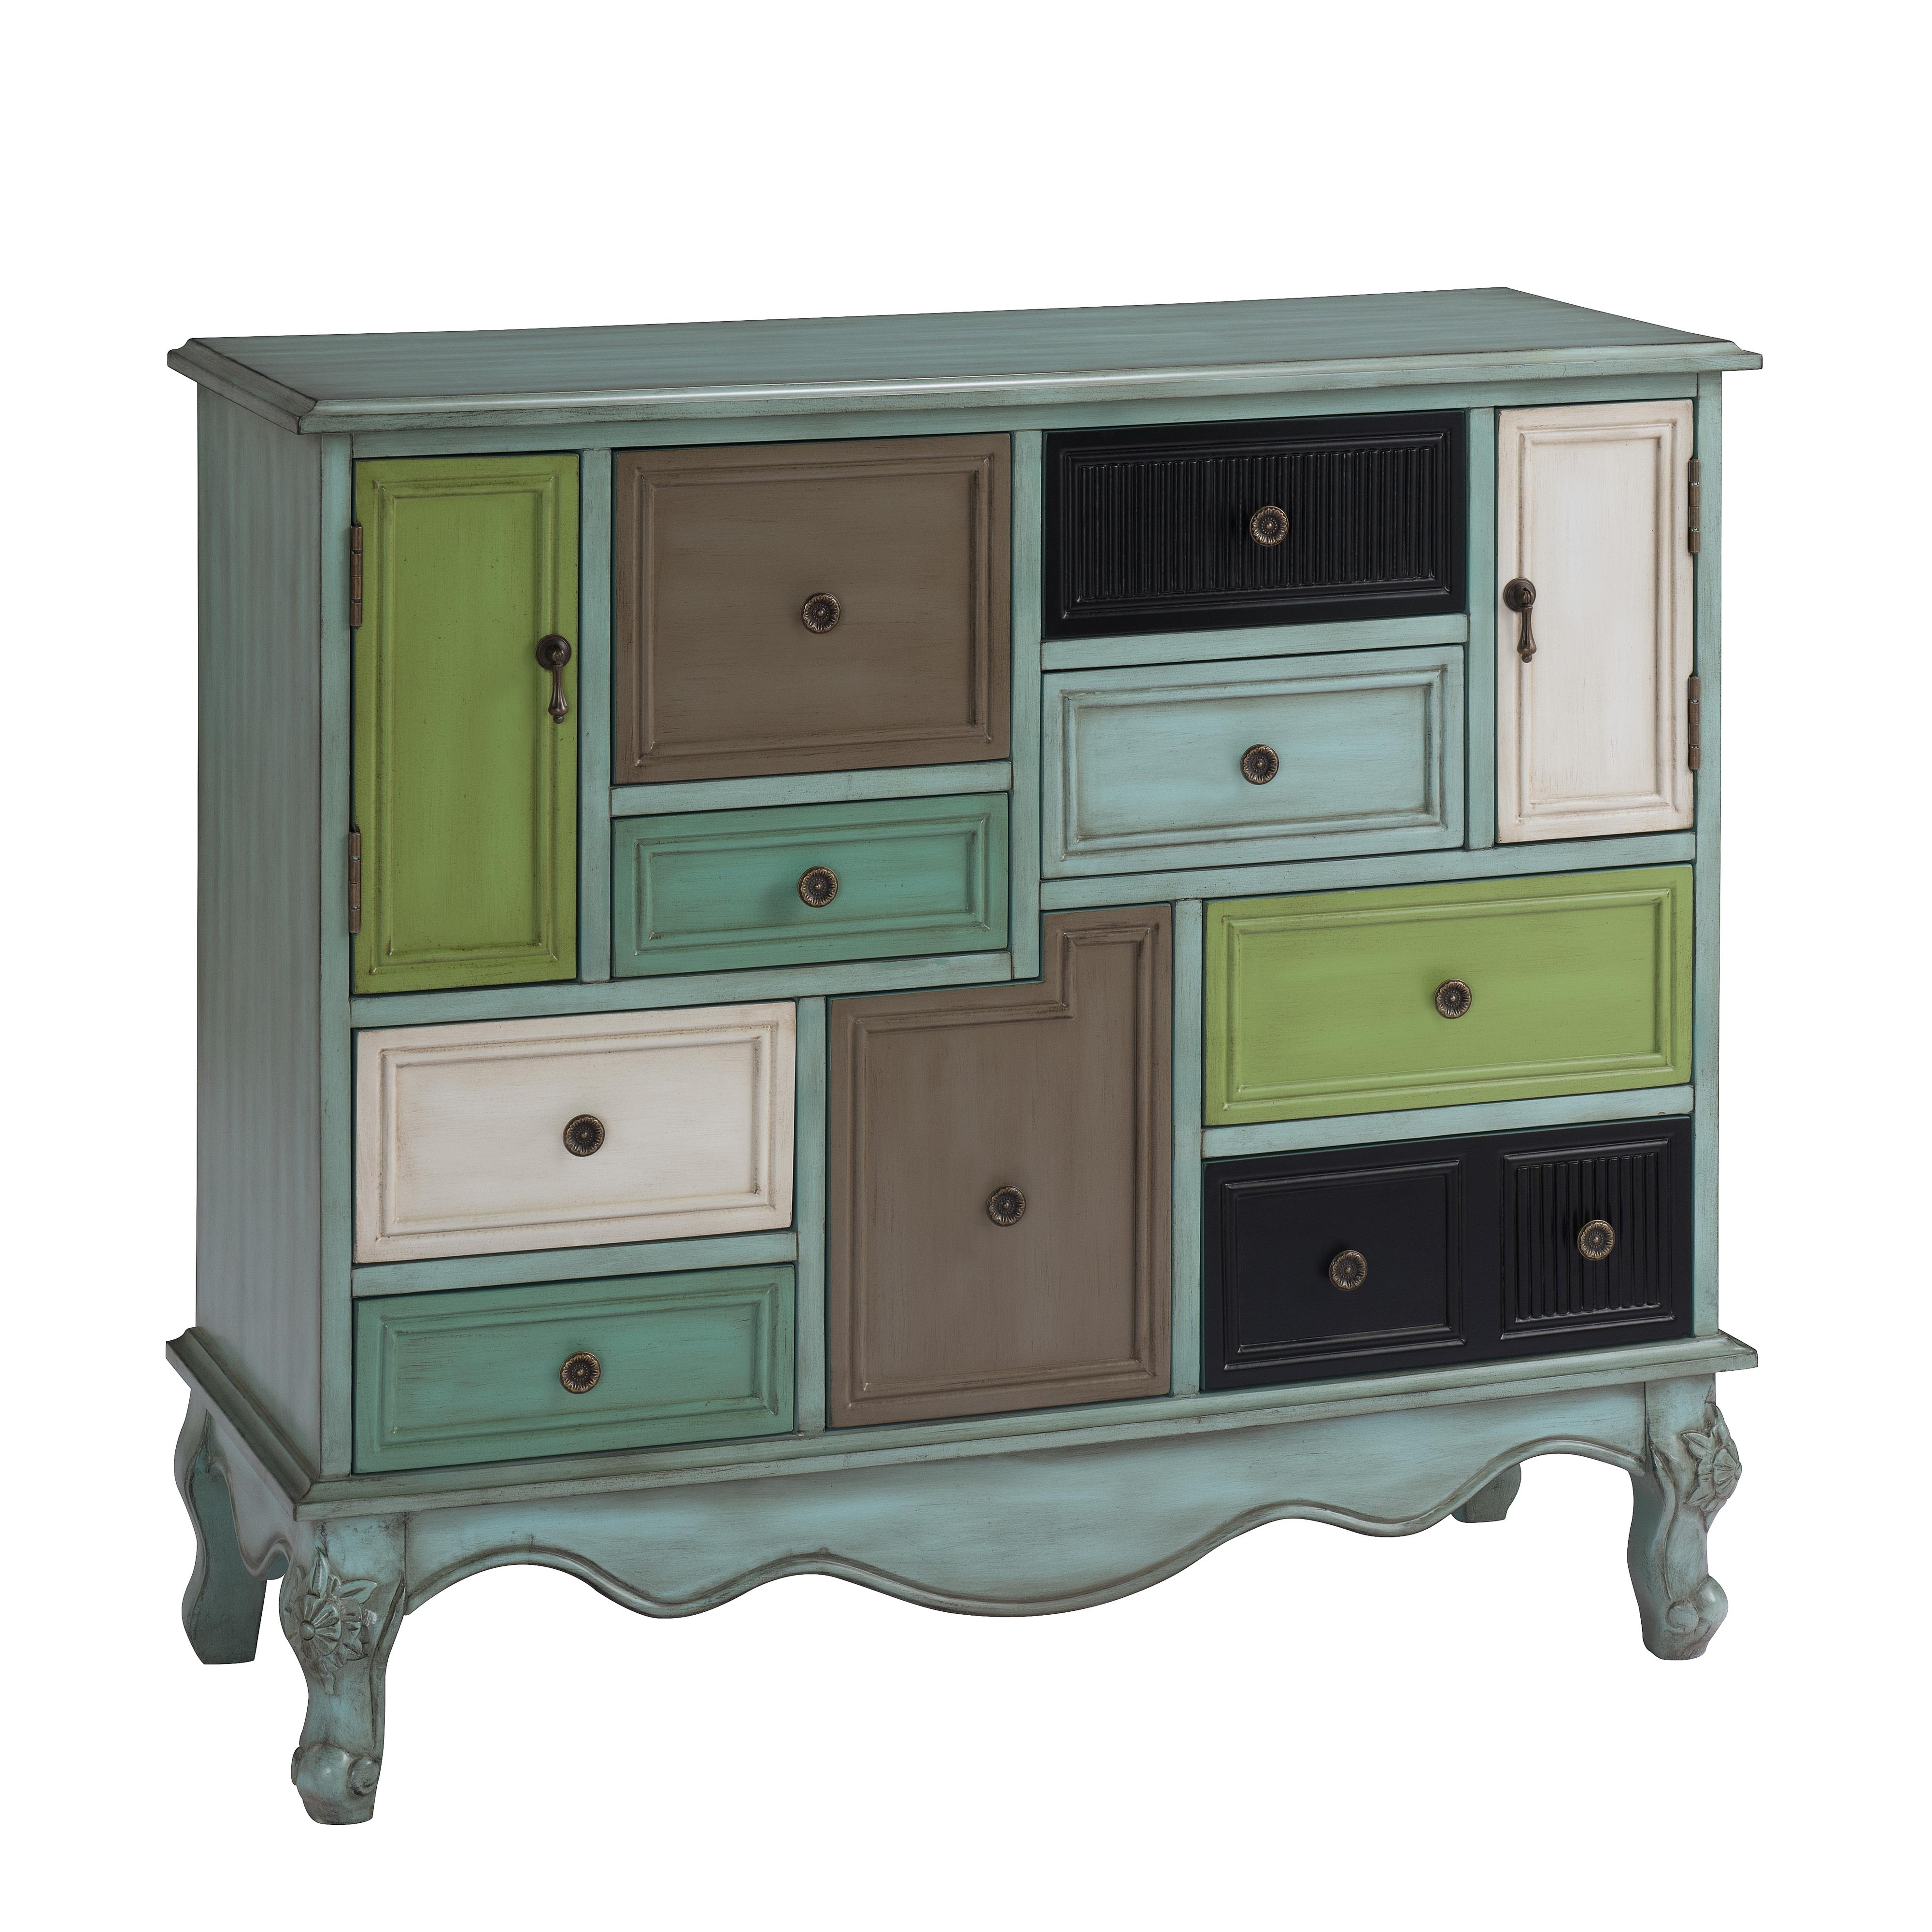 C2C Accents Nine Drawer Two Door Cabinet by C2C at Walker's Furniture